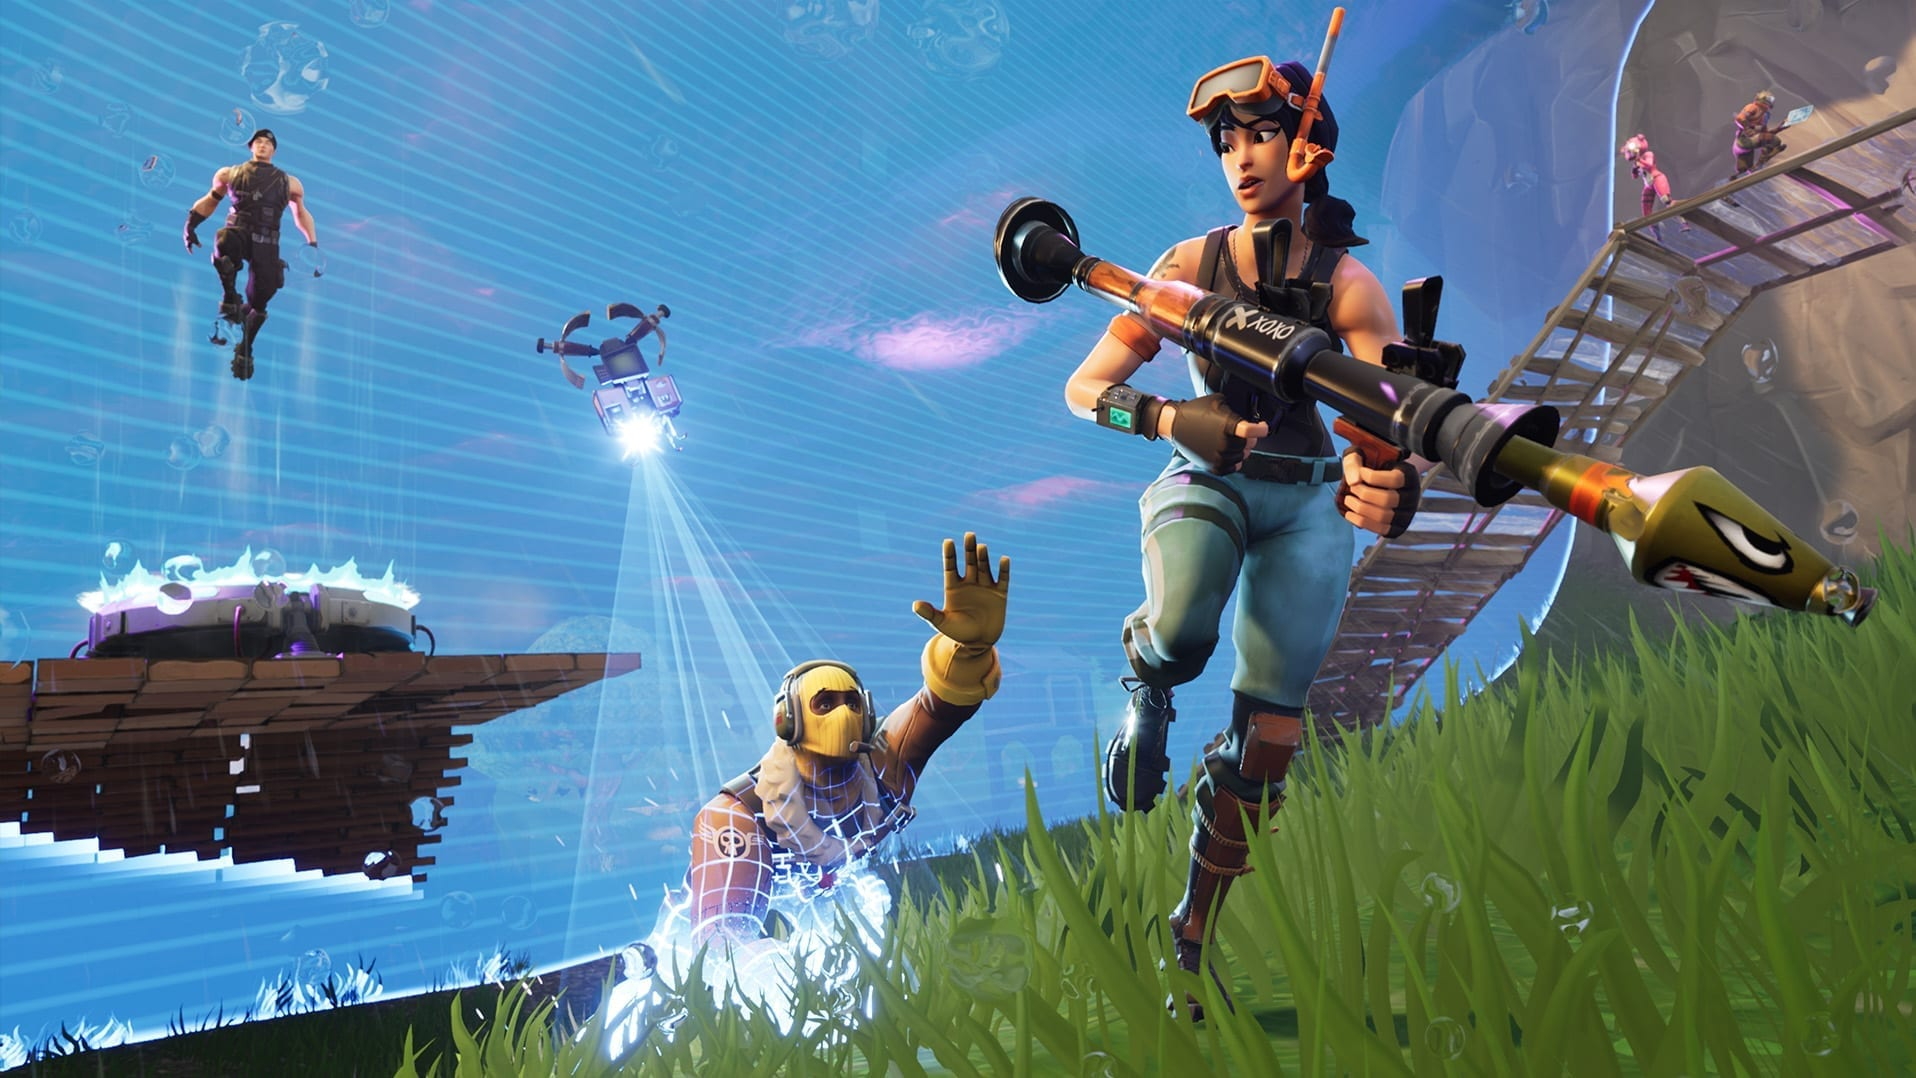 Fortnite cheats: 7 simple tips, tricks and hacks you didn't know